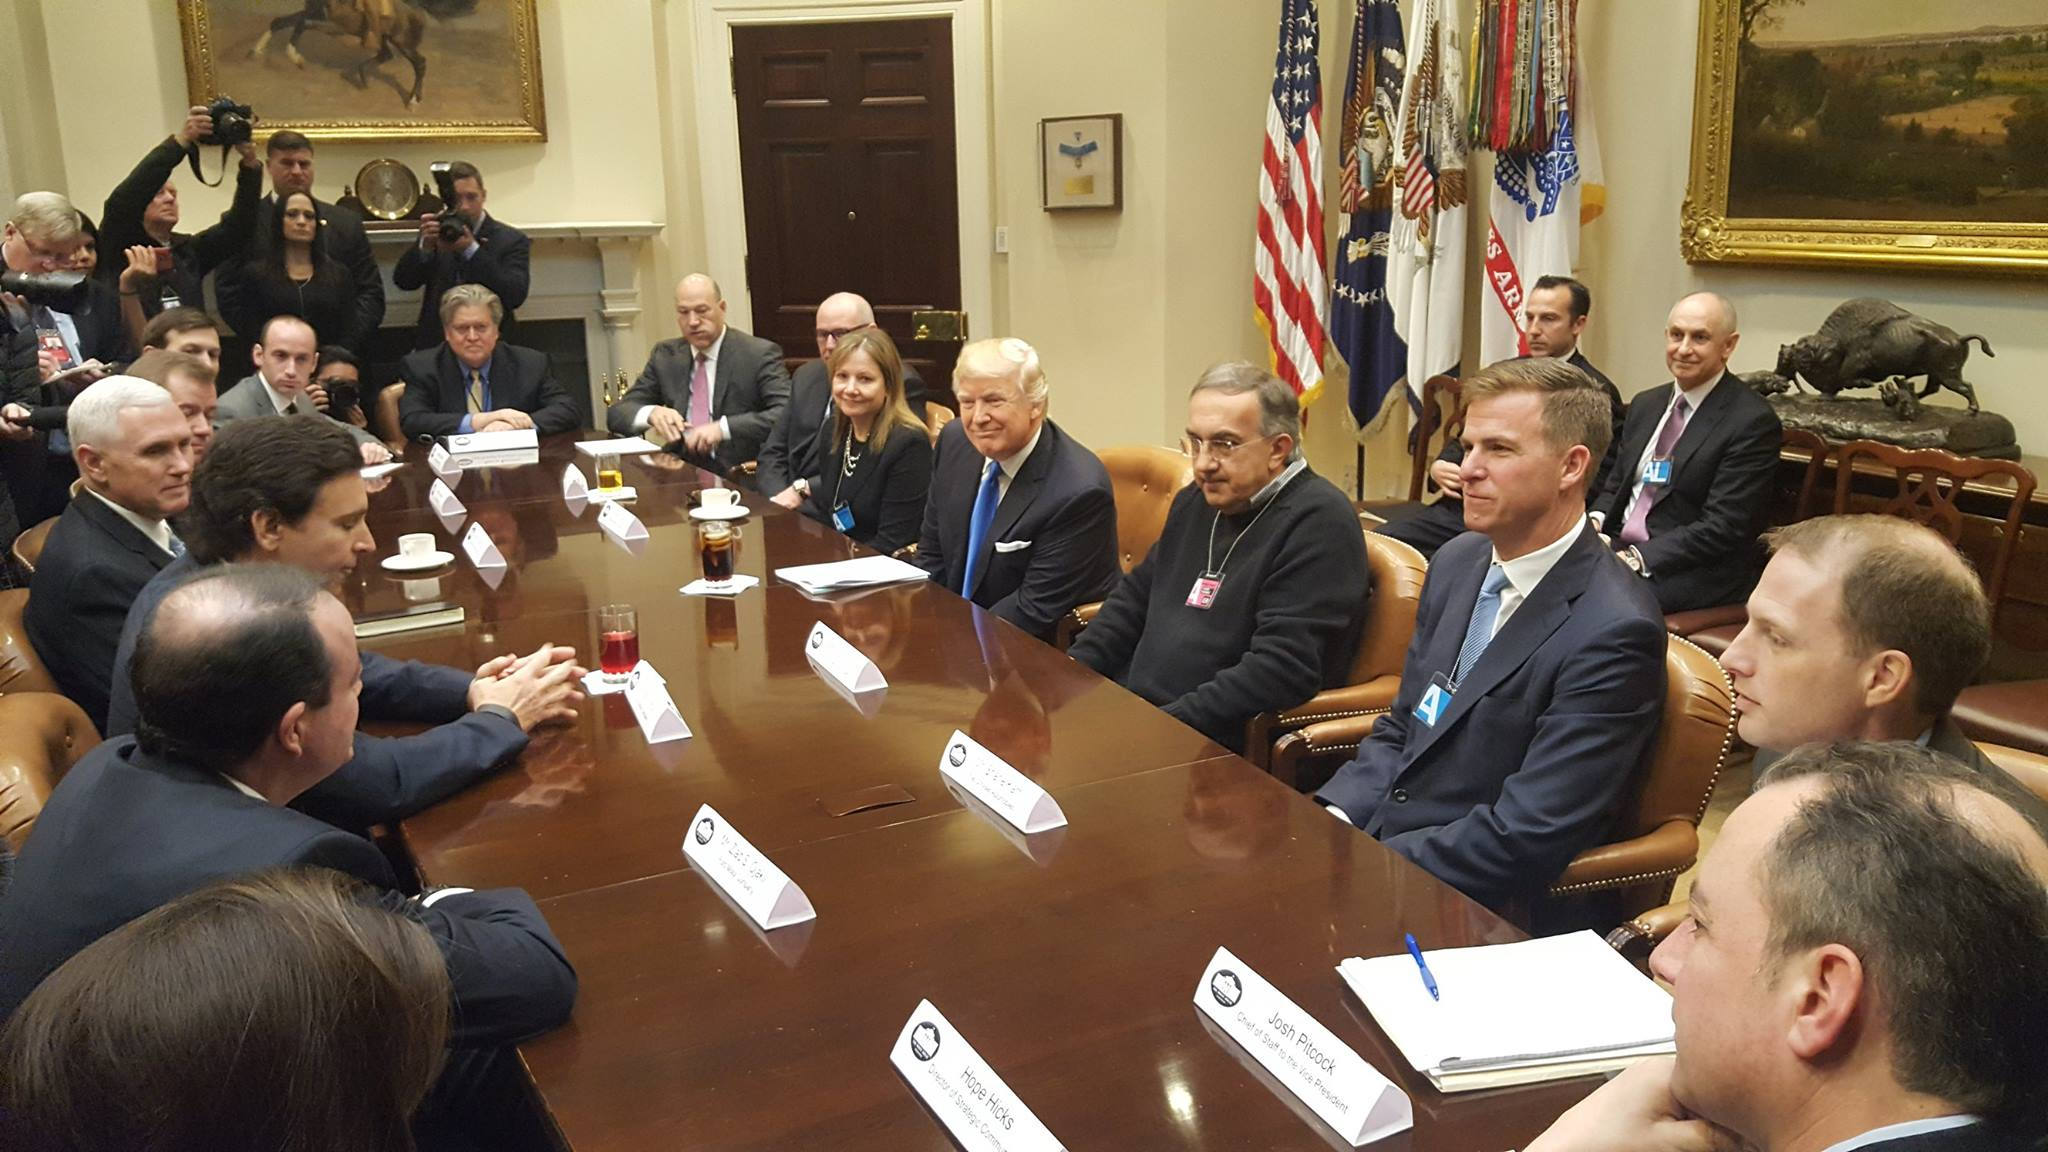 Donald_Trump_and_Mike_Pence_meet_with_automobile_industry_leaders.jpg